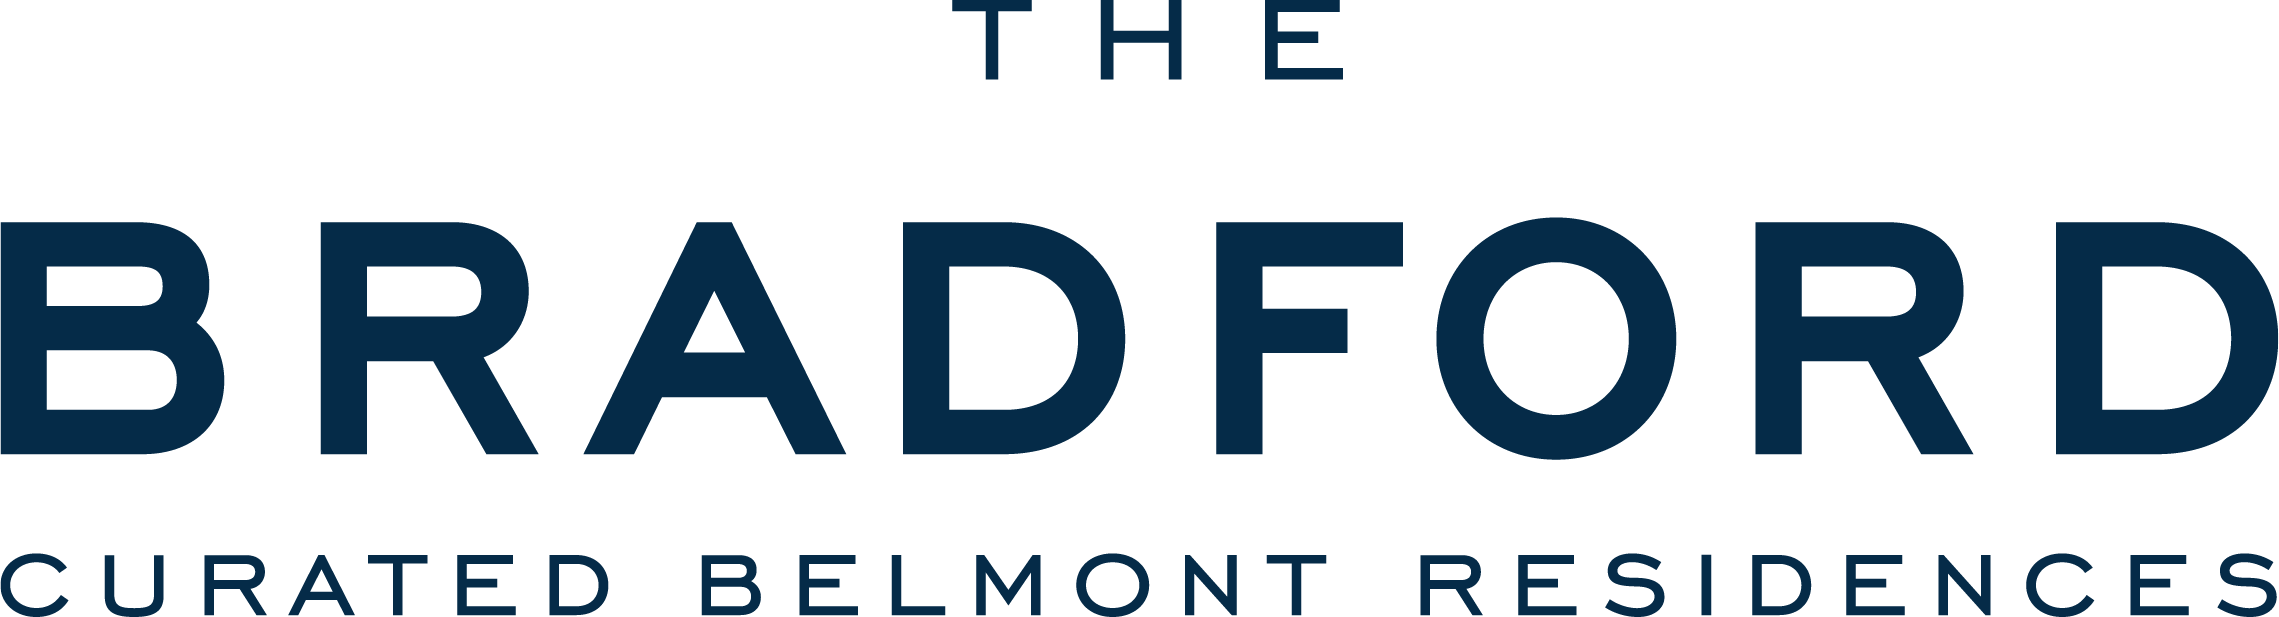 logo for The Bradford apartments in Belmont MA